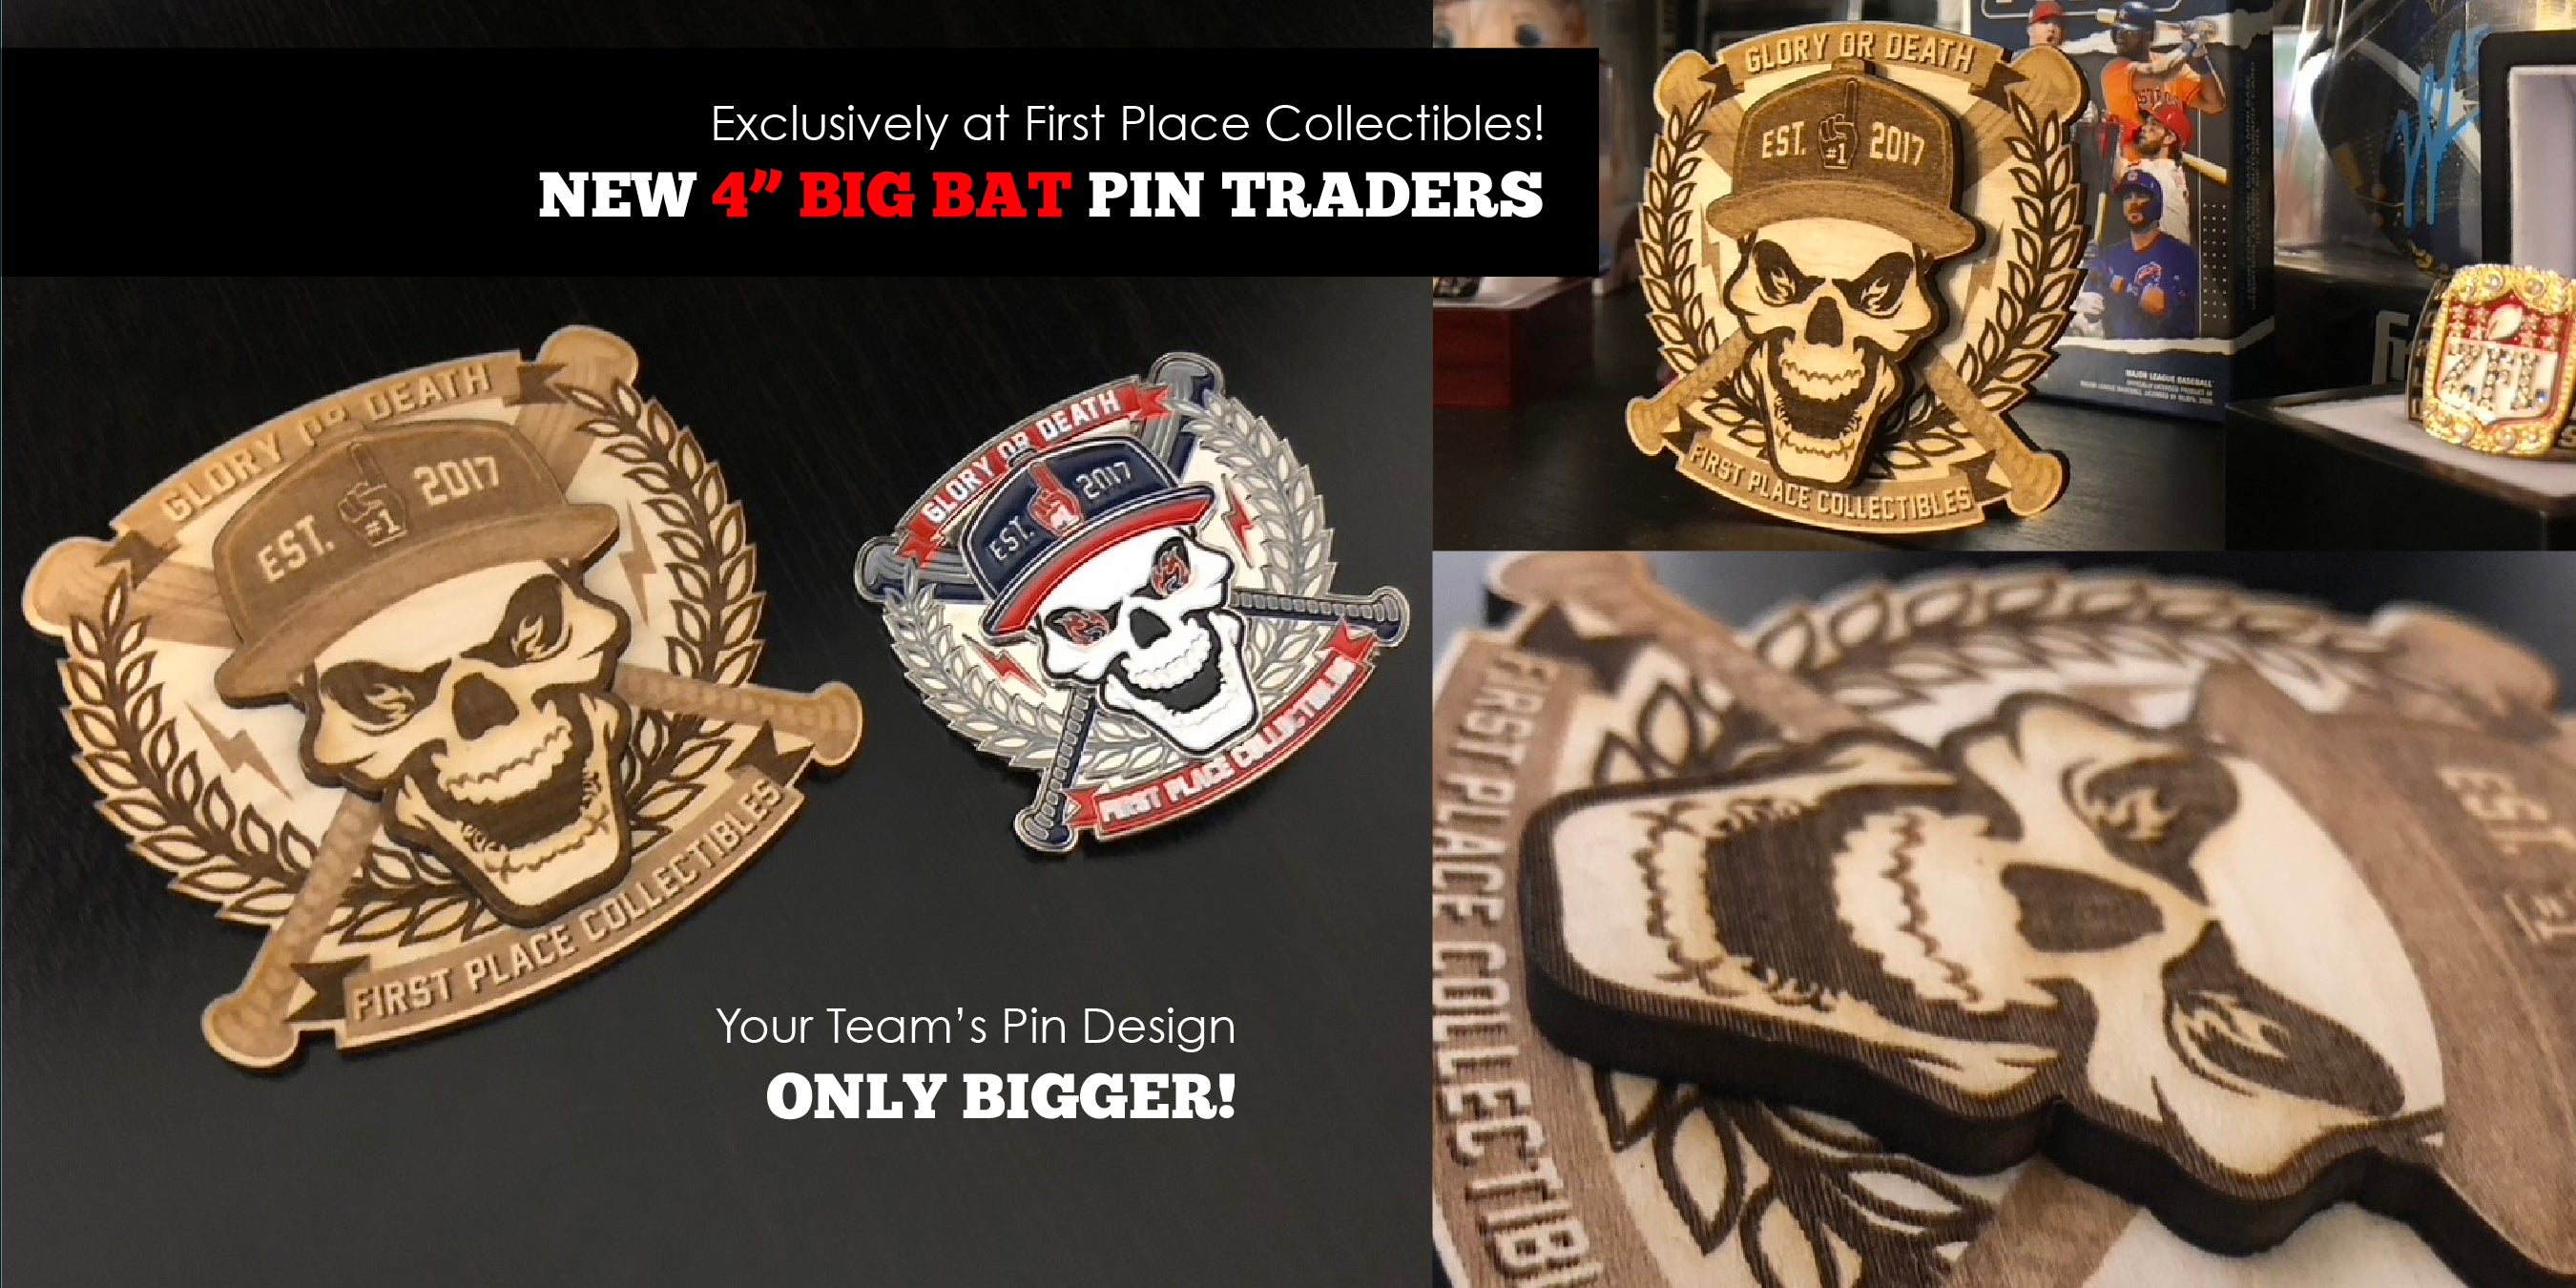 First Place Collectibles, Trading Pins, Team Pin, Baseball Pin, Pin Trading, Big Bat, Wood Pin, Maple, Custom, Collectibles, new, exclusive